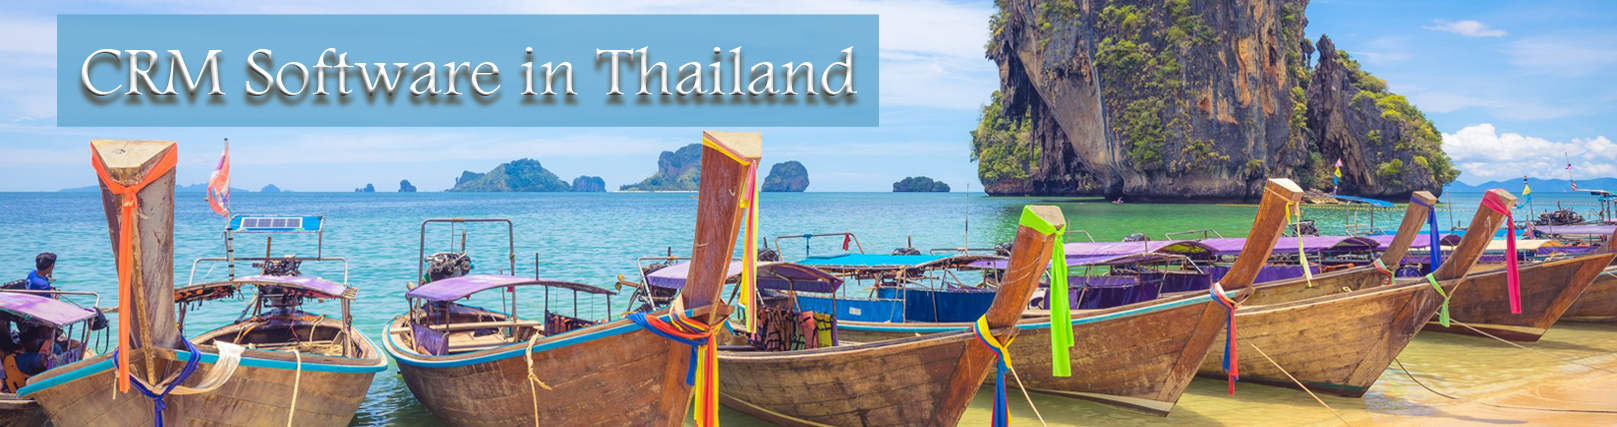 crm in thailand banner img1